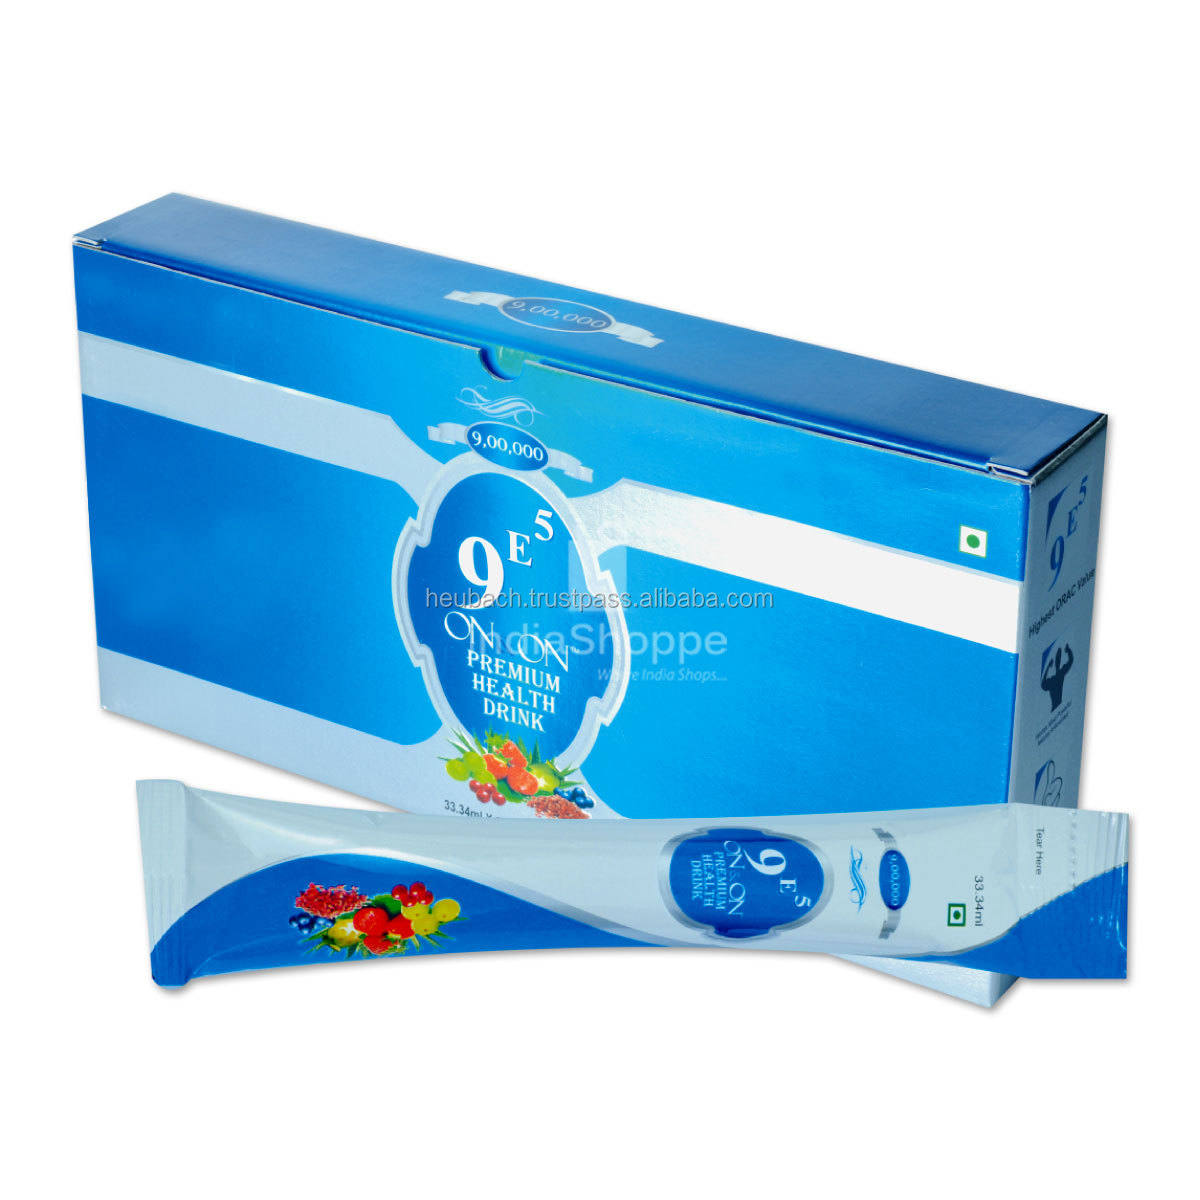 9E5 premium health drink for beauty